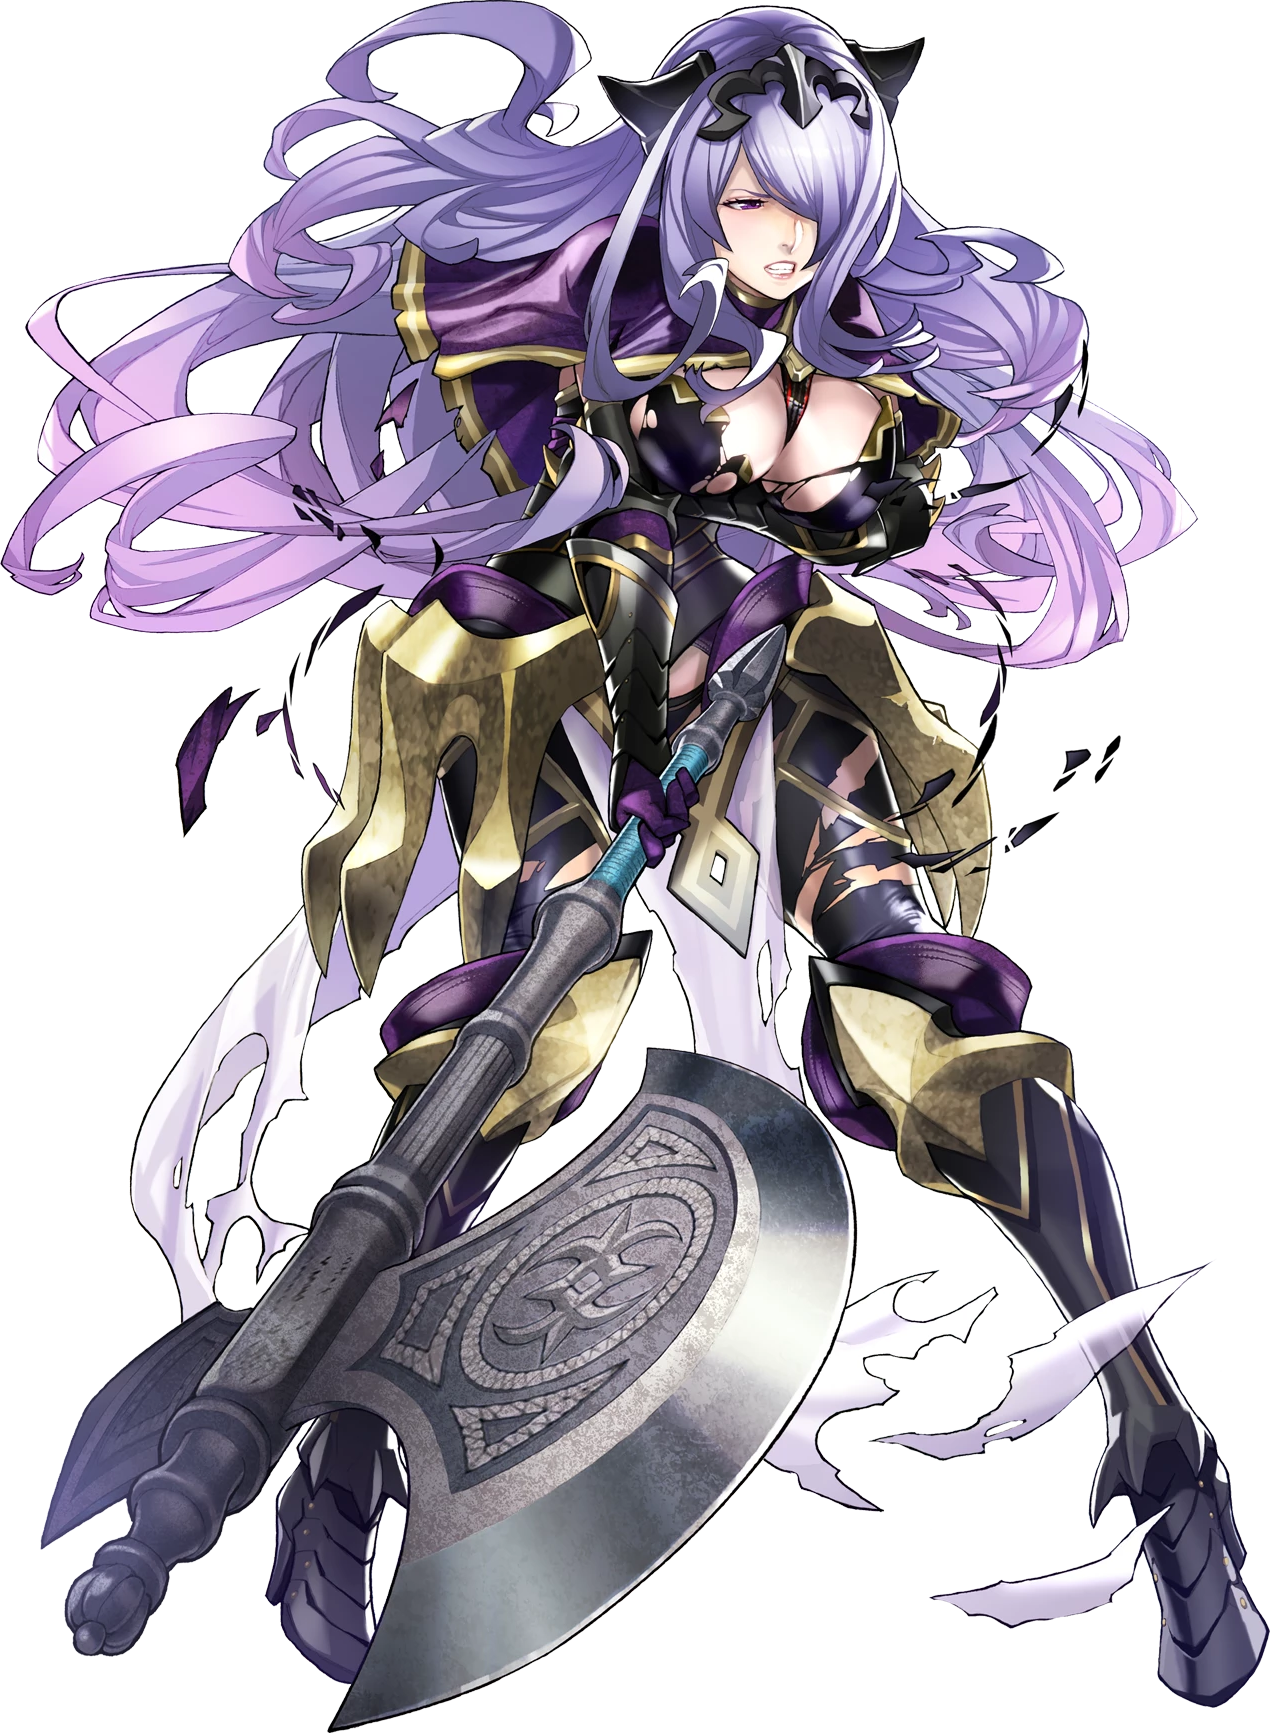 image camilla fe heroes top strongest wikia